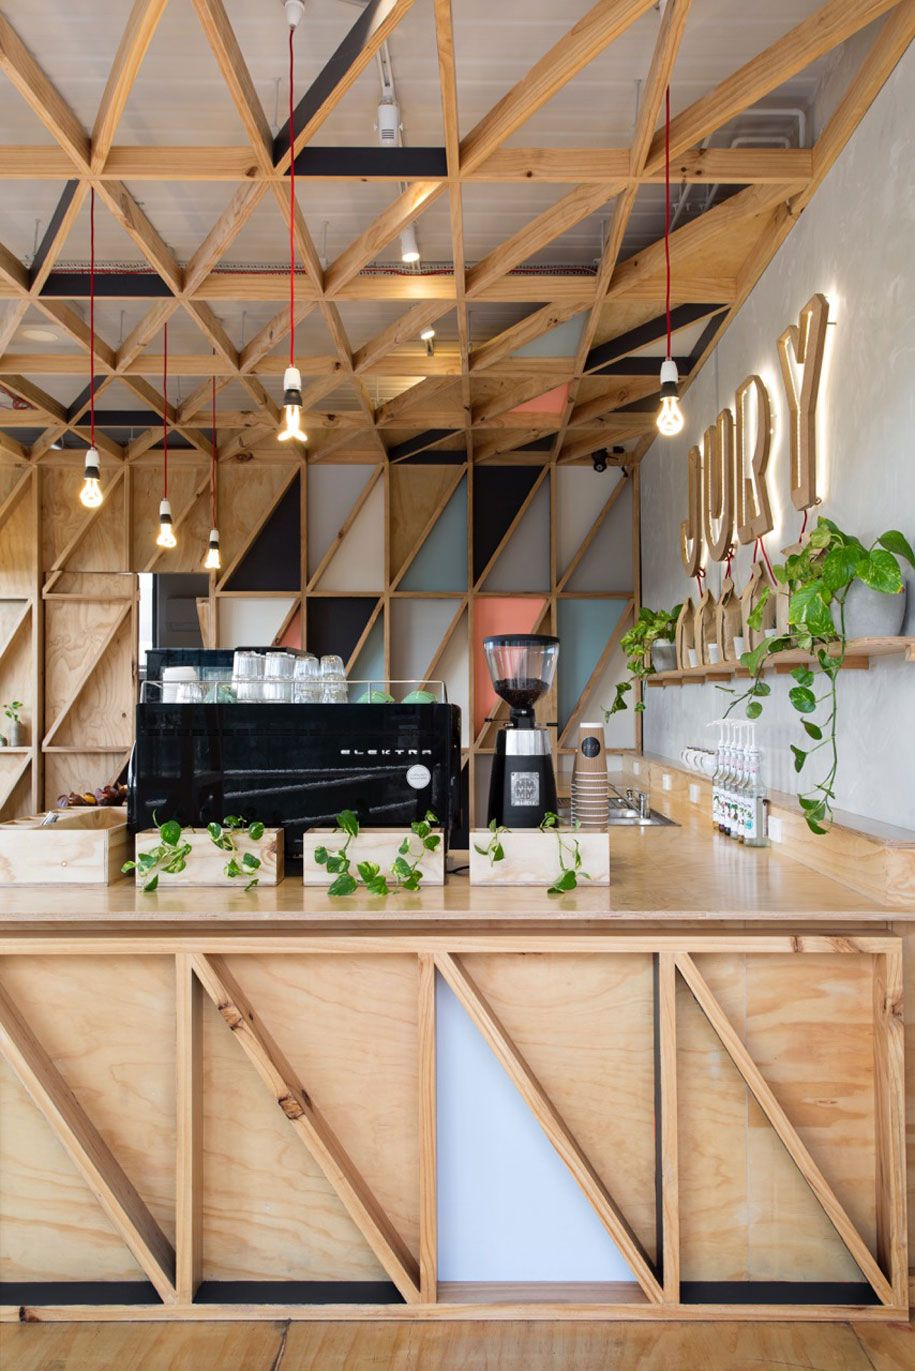 plywood details australian prison converted into a cafe lined with colourful tessellating triangles